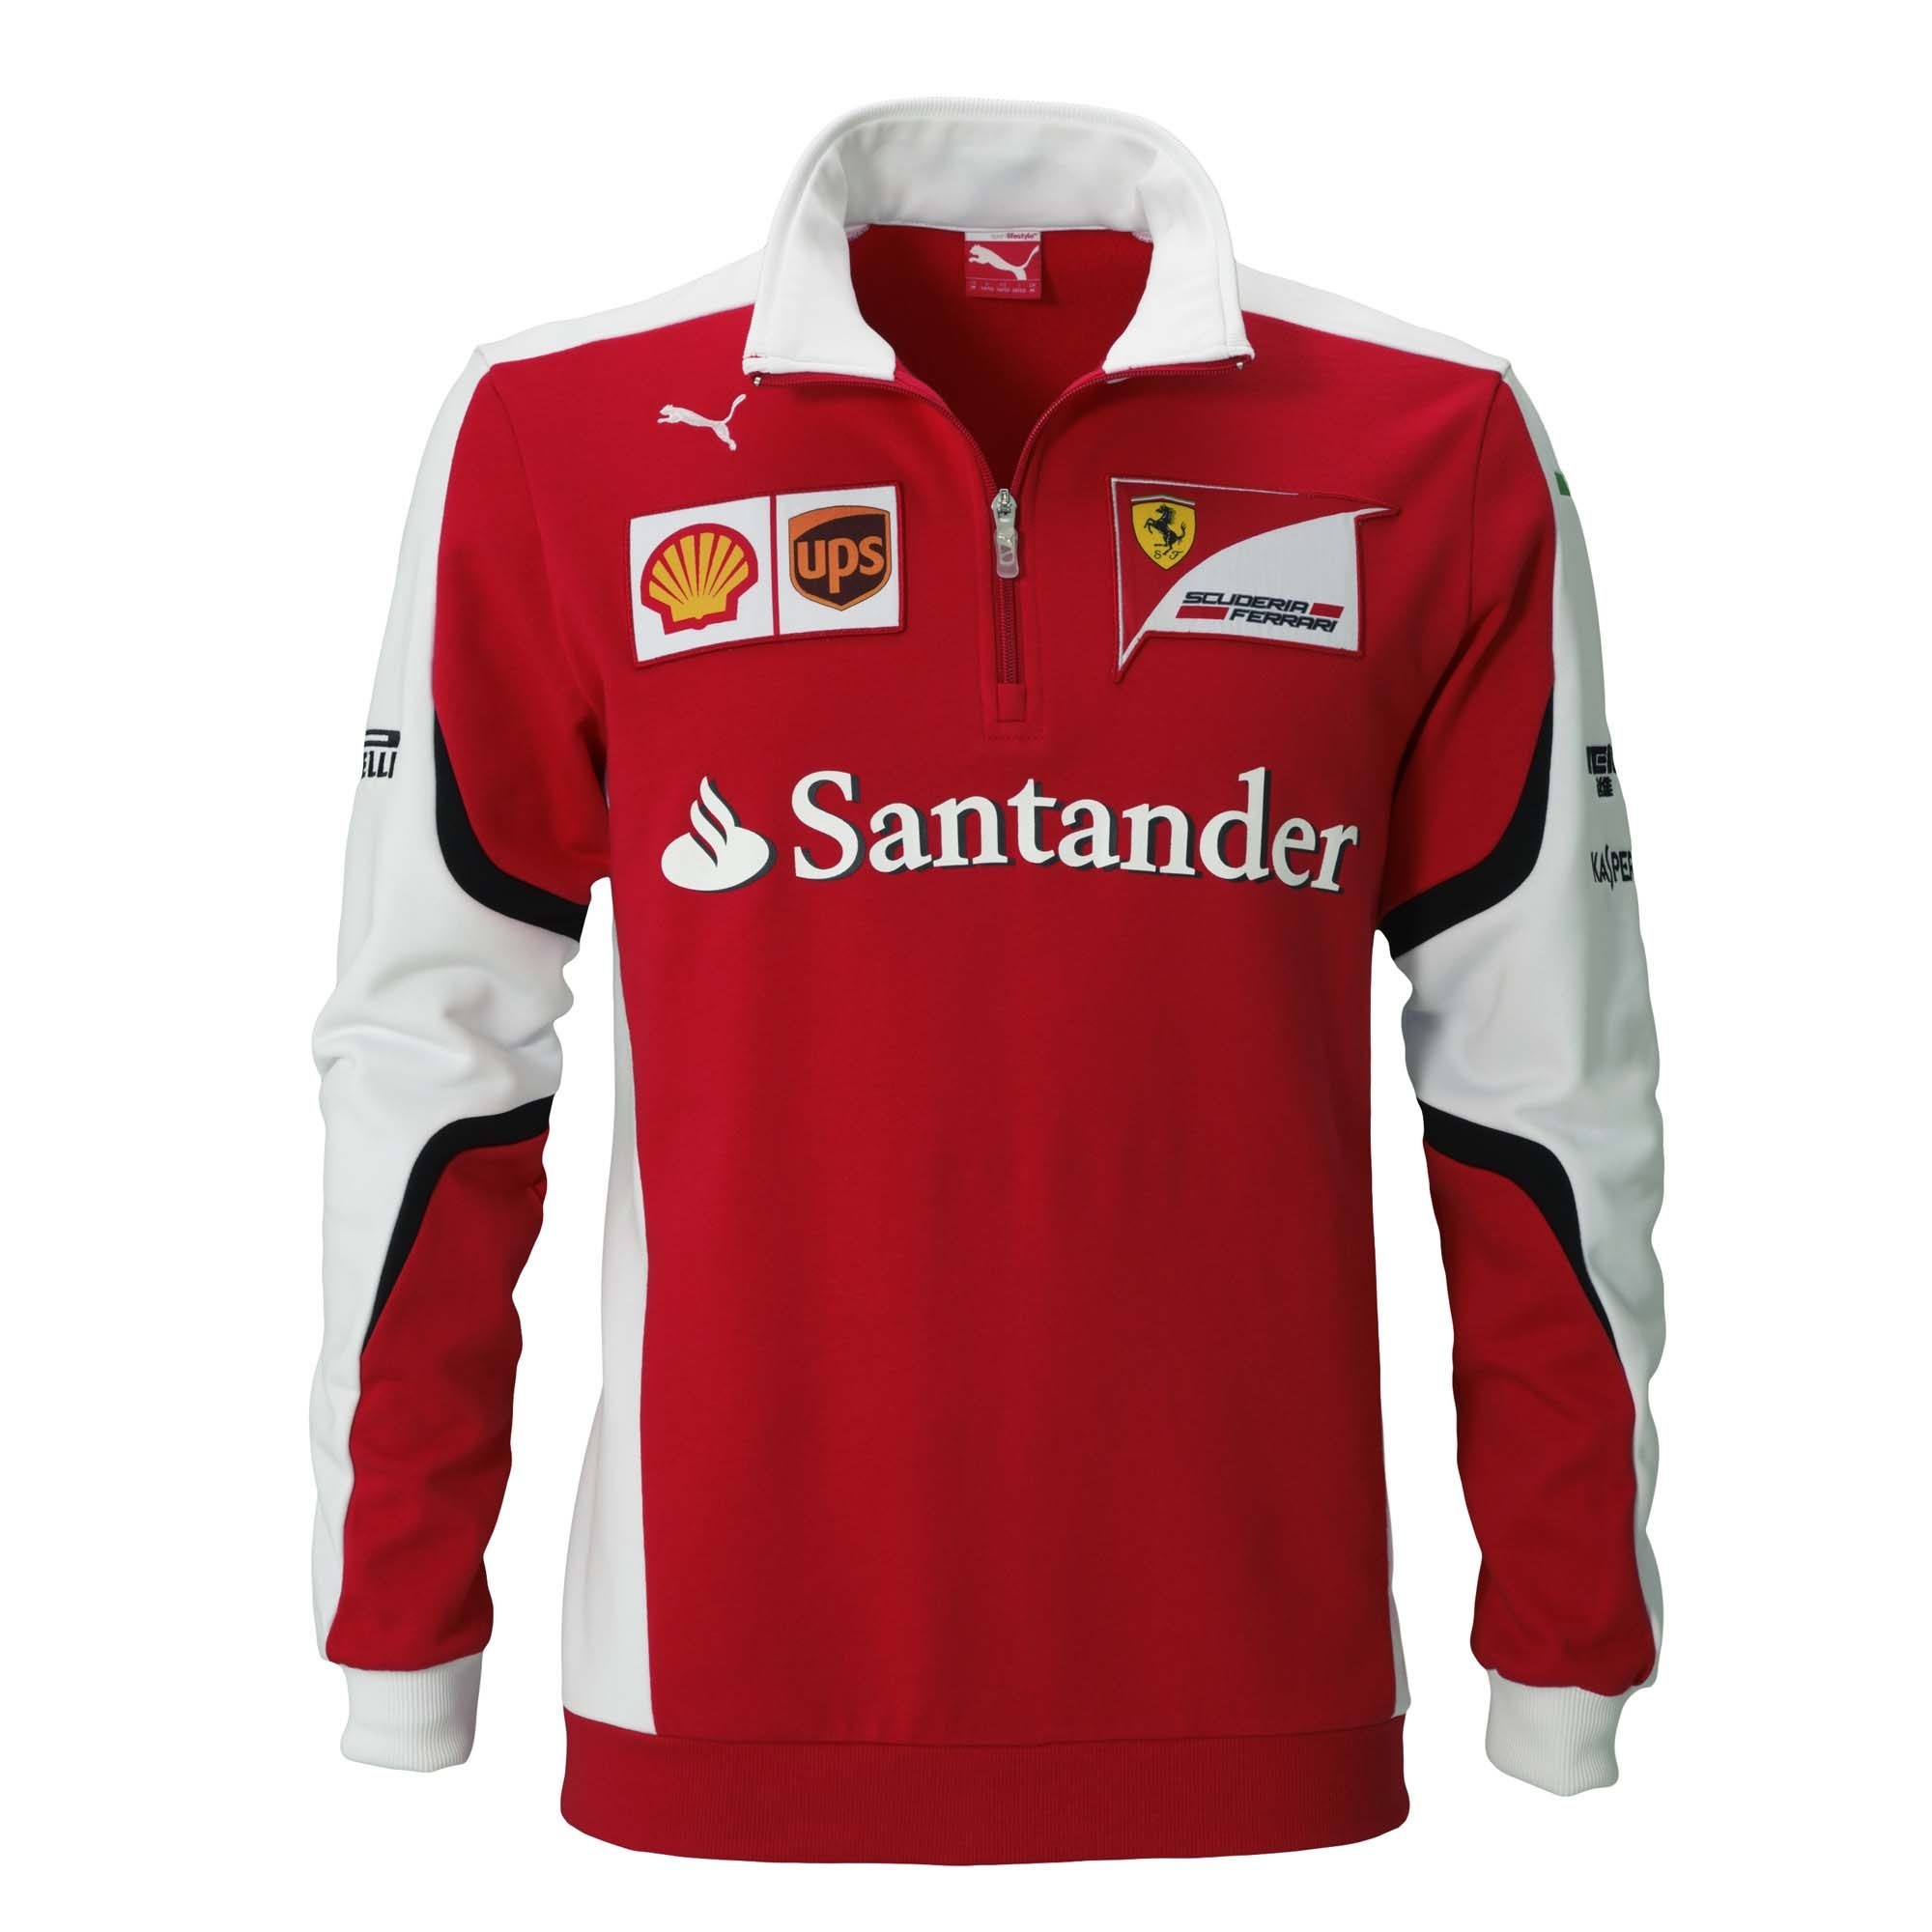 Online Sportswear Ferrari Jersey Jackets And Other Clothes Ferrari Store Shirt Outfit Men Mens Outfits Sport Outfits